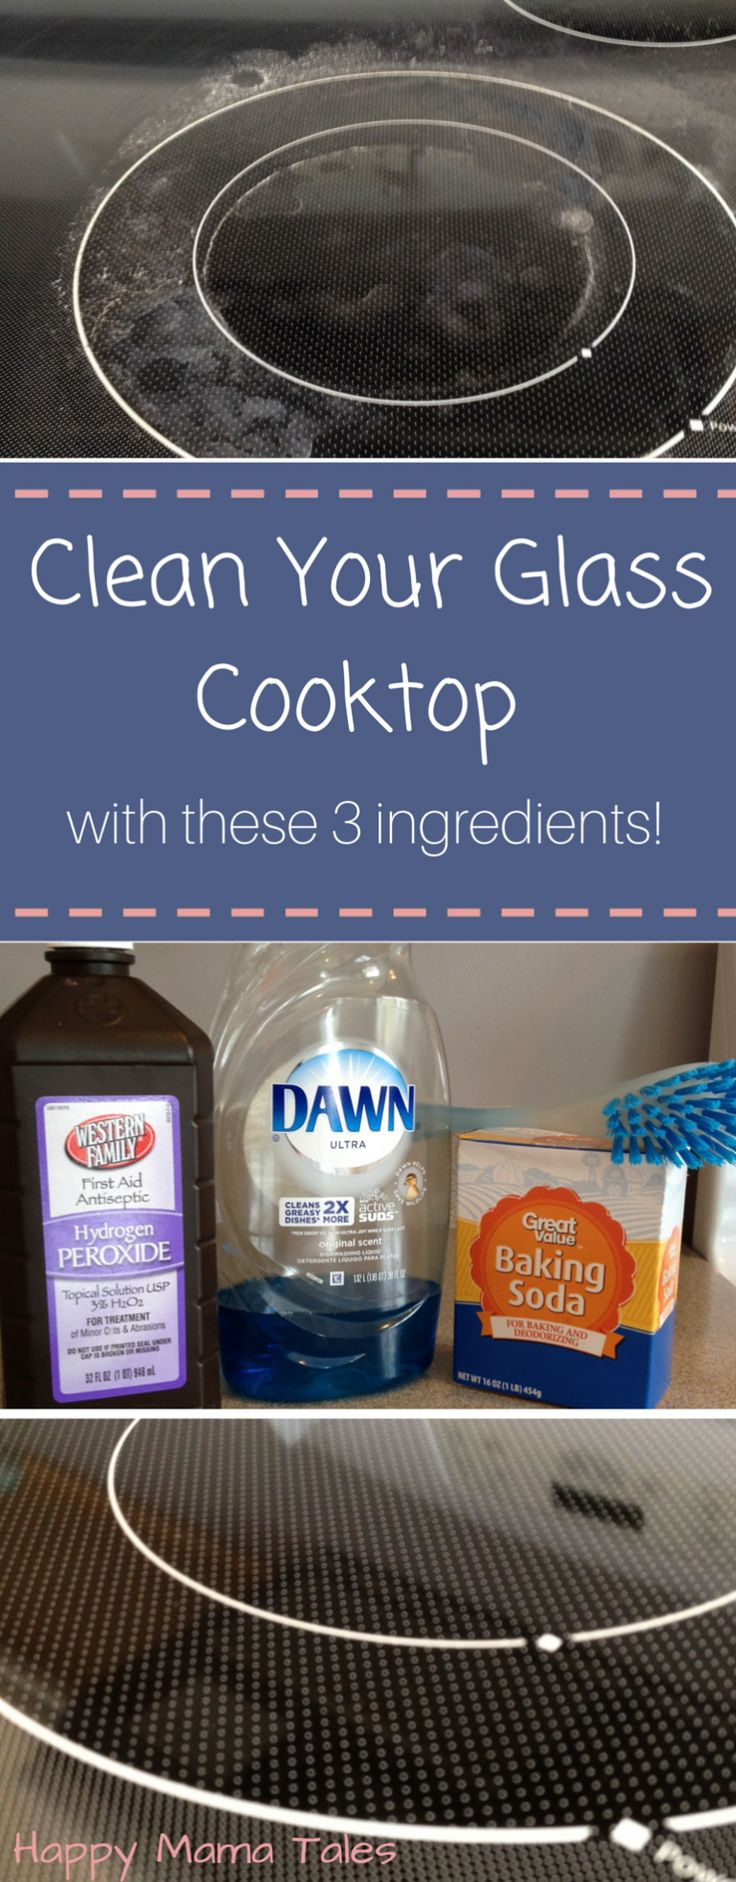 cleaning tips 16